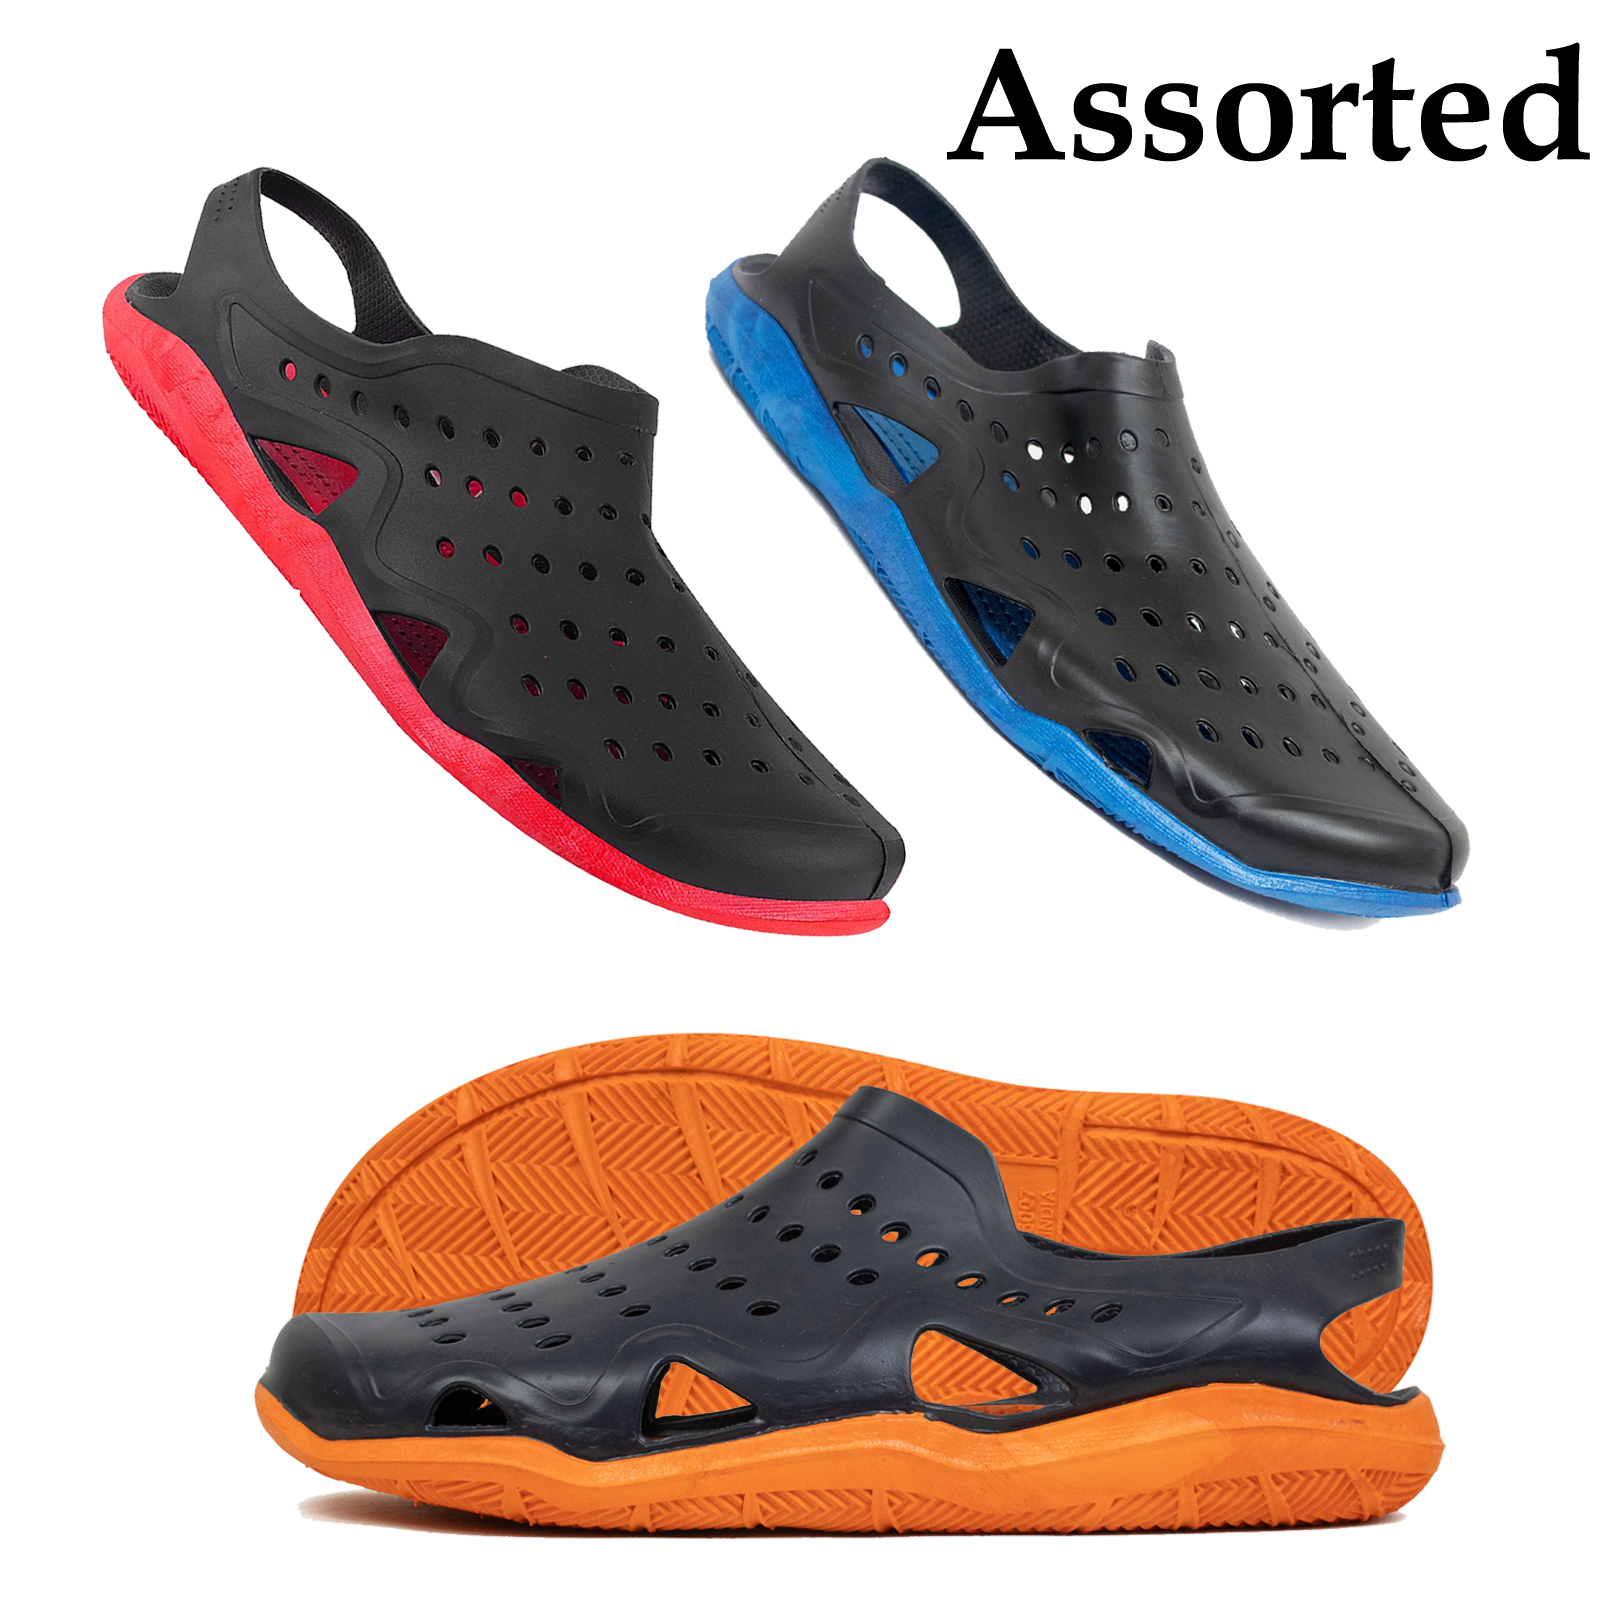 Foot Trends 6007-Color-Sole-Combo PK 12 (30-35) Clog For Kids (Multi, 30/2,31/2,32/2,33/2,34/2,35/2, PAIR'S)